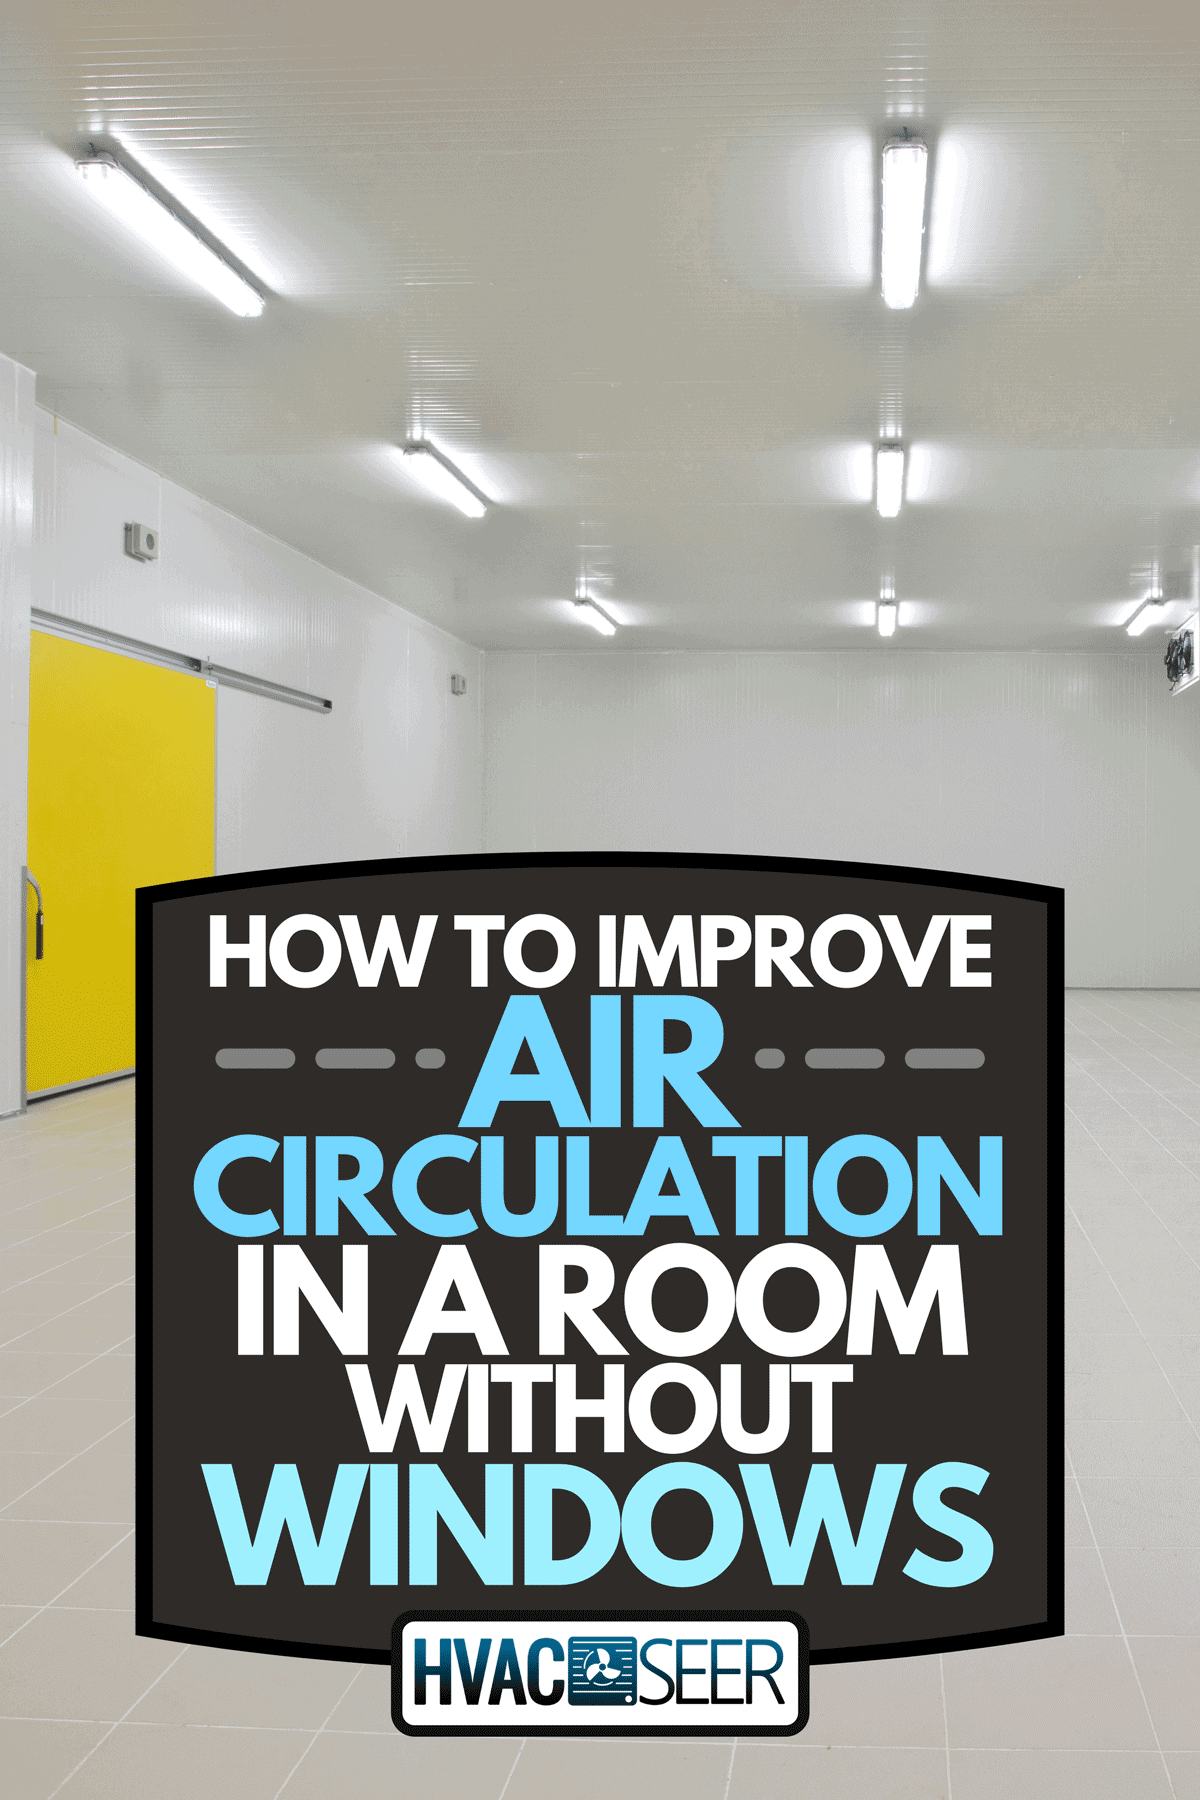 Little gray empty room with plastic trim of the walls and large yellow door, How To Improve Air Circulation In A Room Without Windows